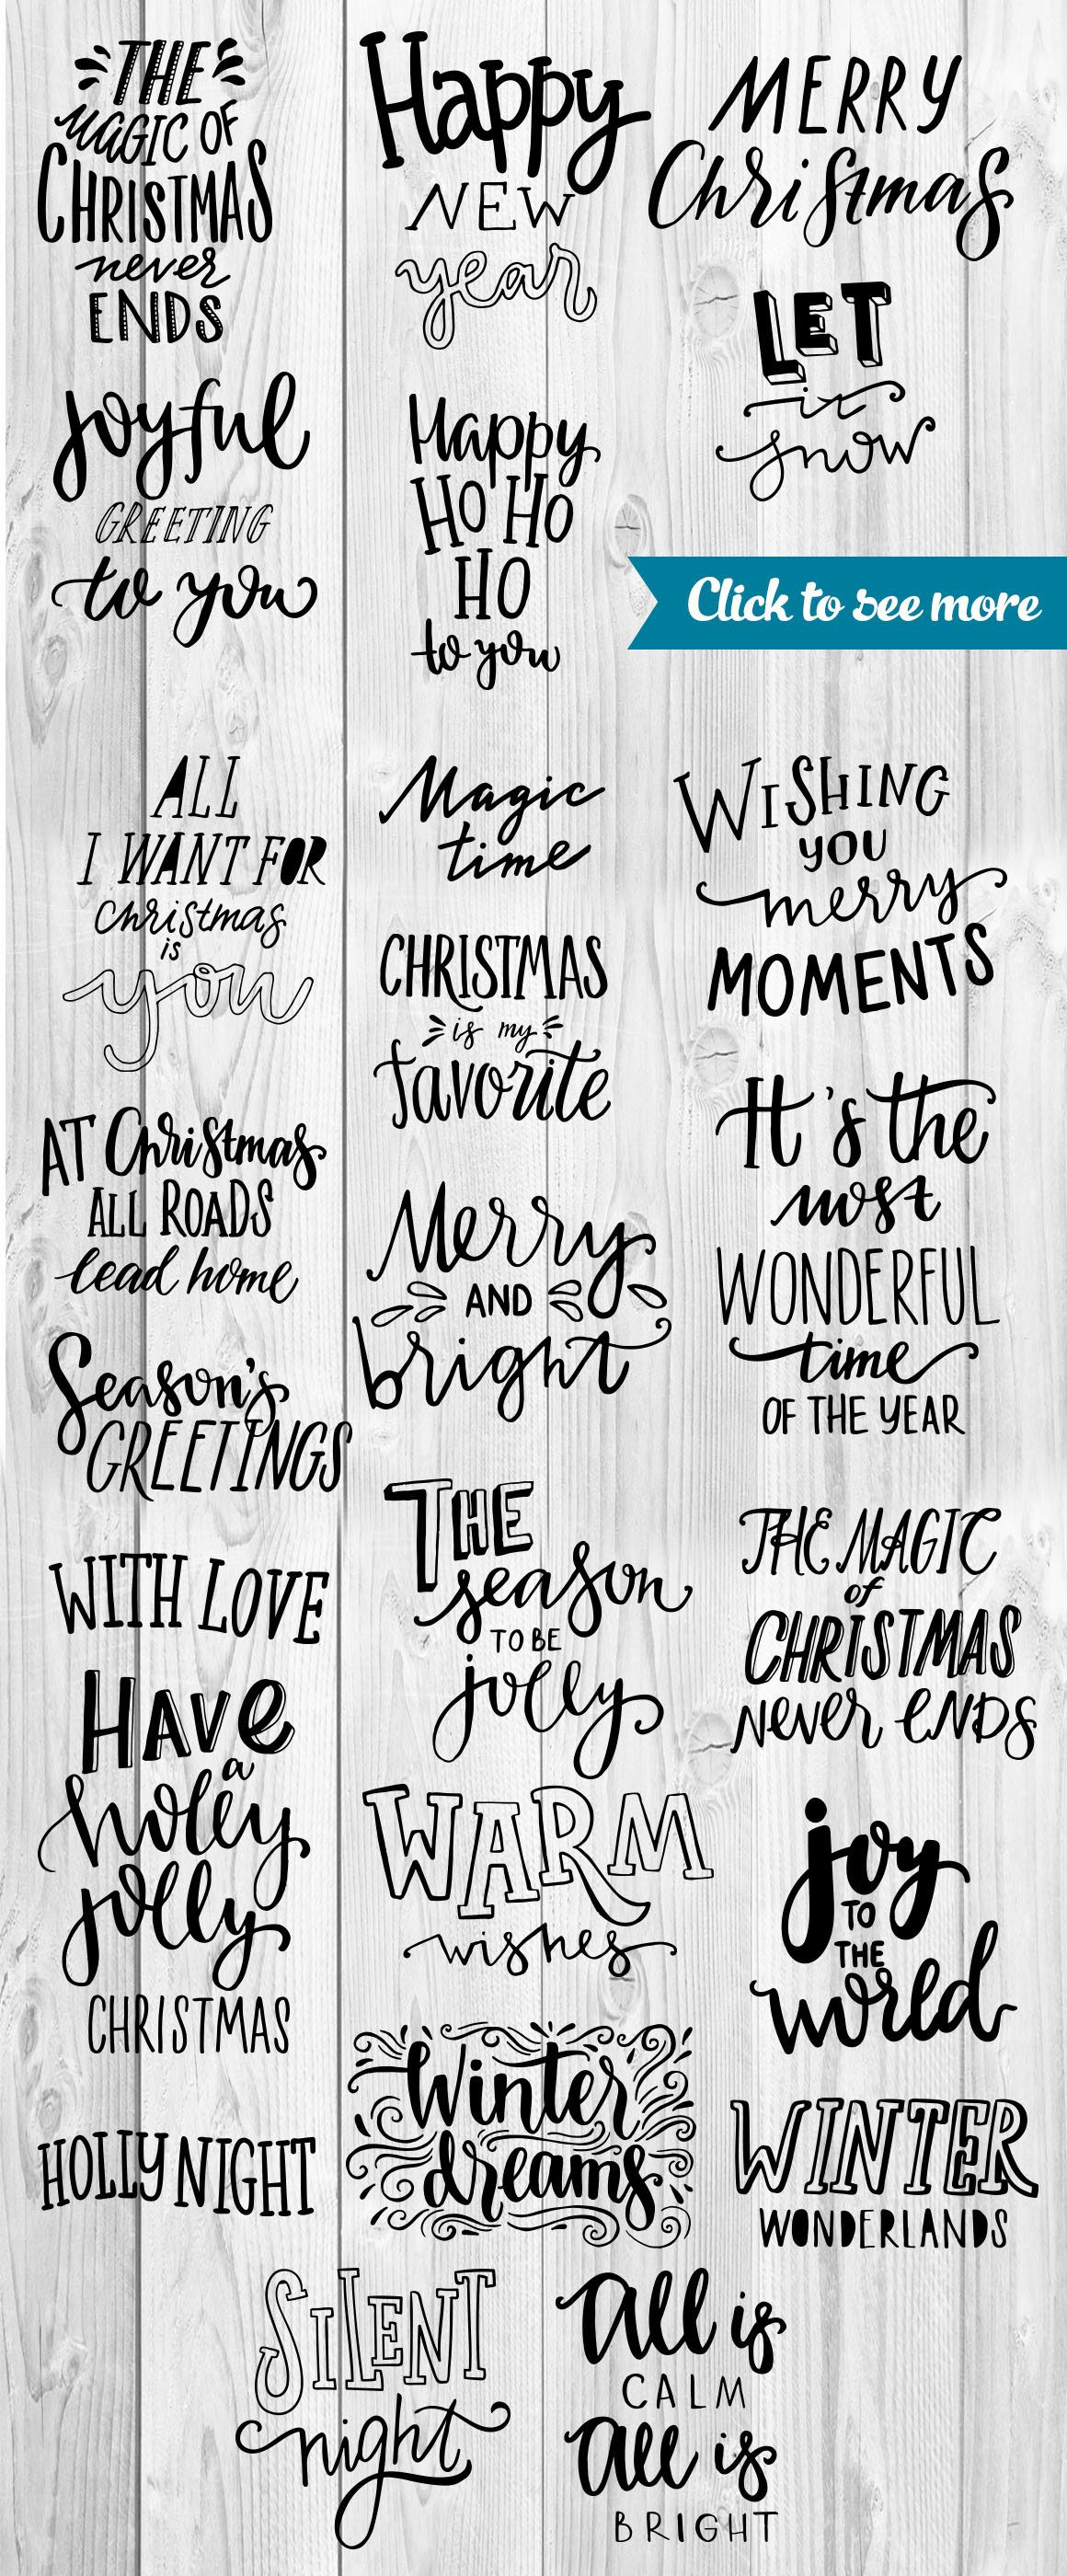 Small Crop Of Christmas Sayings For Cards